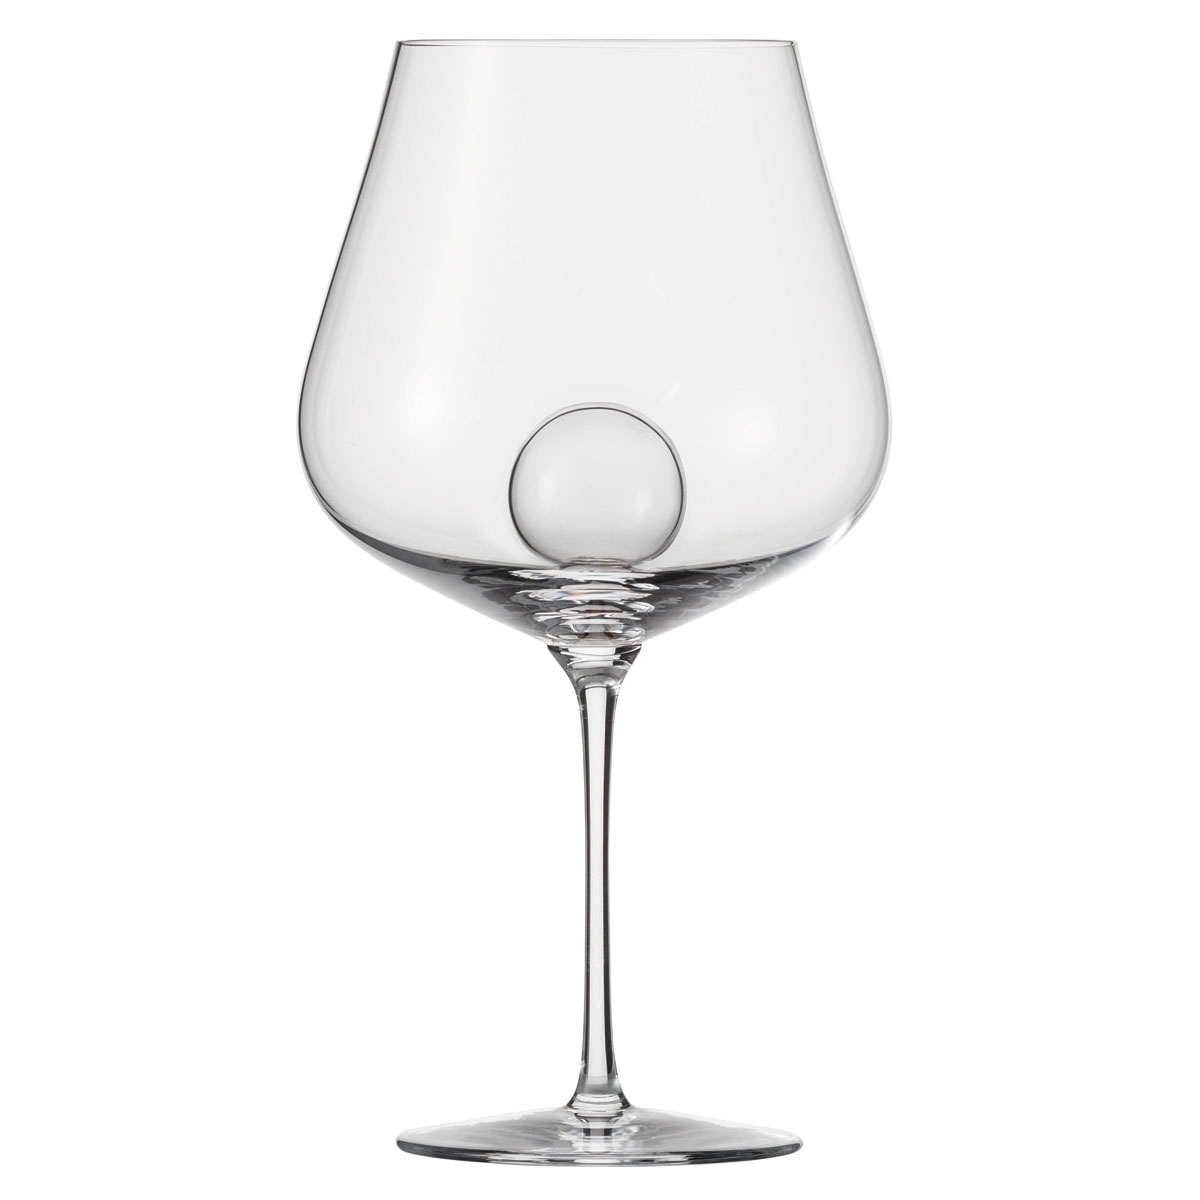 Schott Zwiesel Tritan Crystal, 1872 Air Sense Burgundy, Pinot Noir Glass, Single